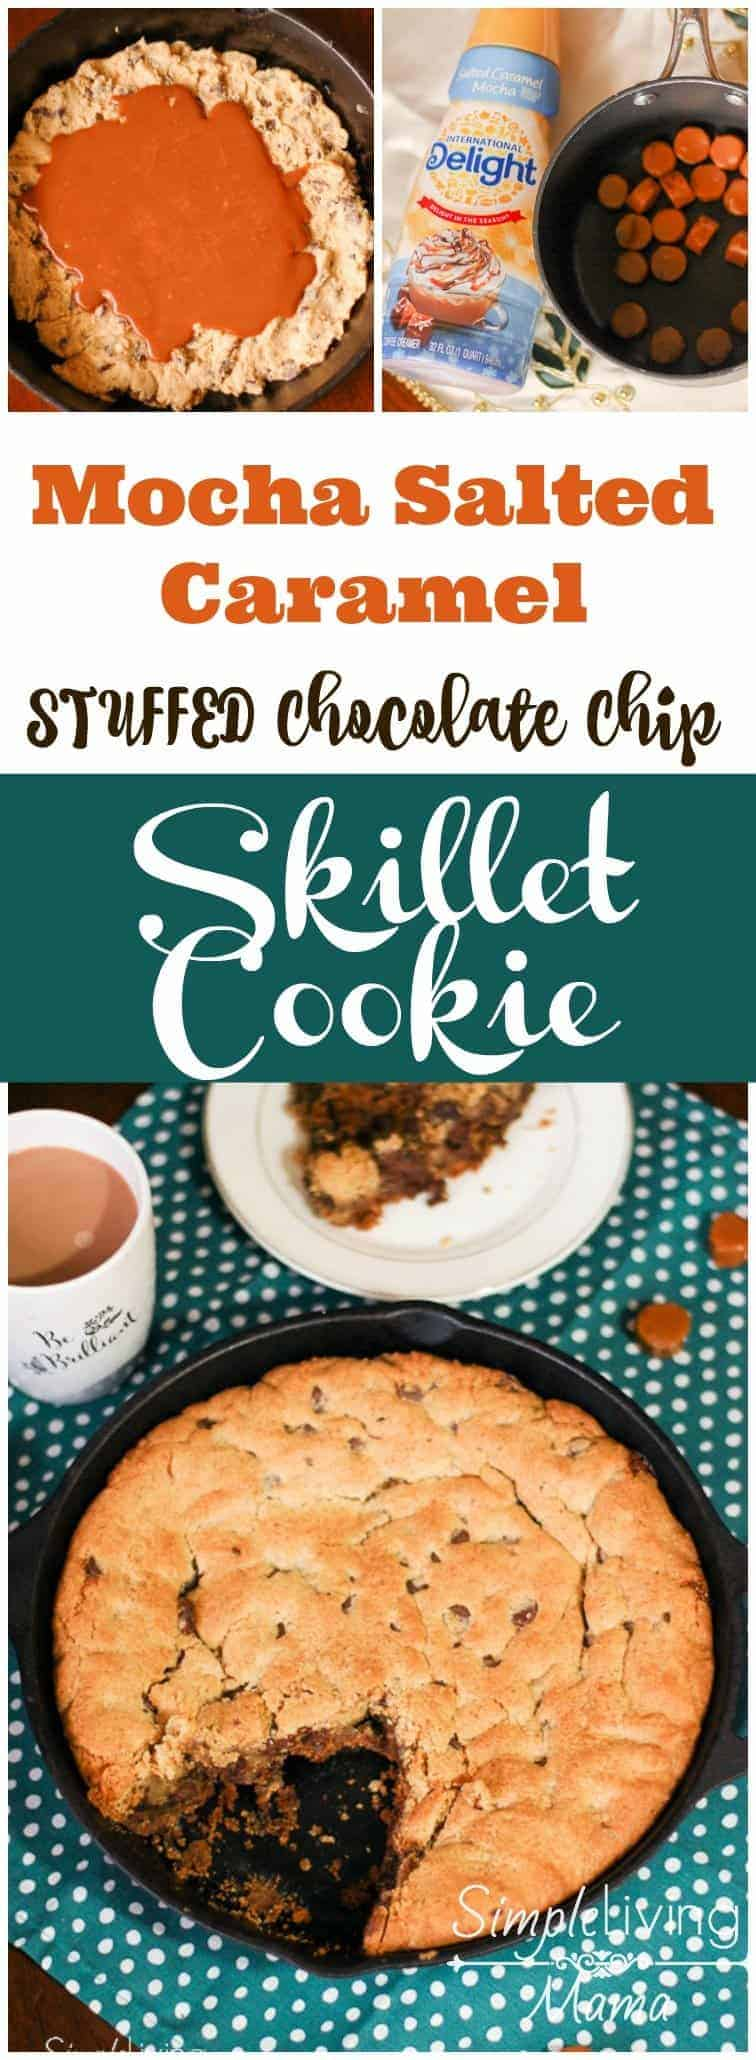 A delicious mocha salted caramel stuffed chocolate chip skillet cookie!